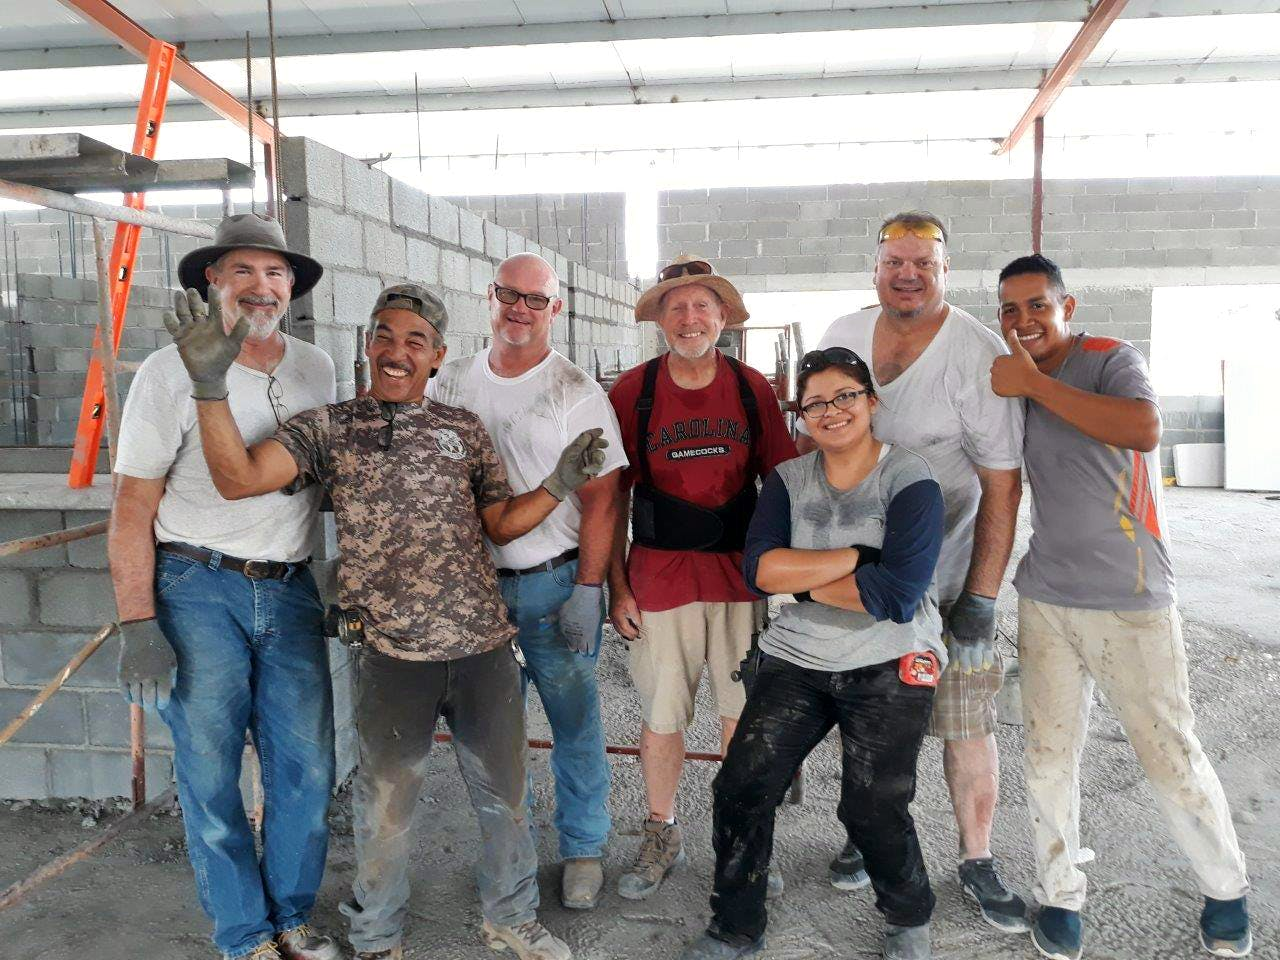 7 Secrets To Lead People on a Successful Construction Trip Every Time!